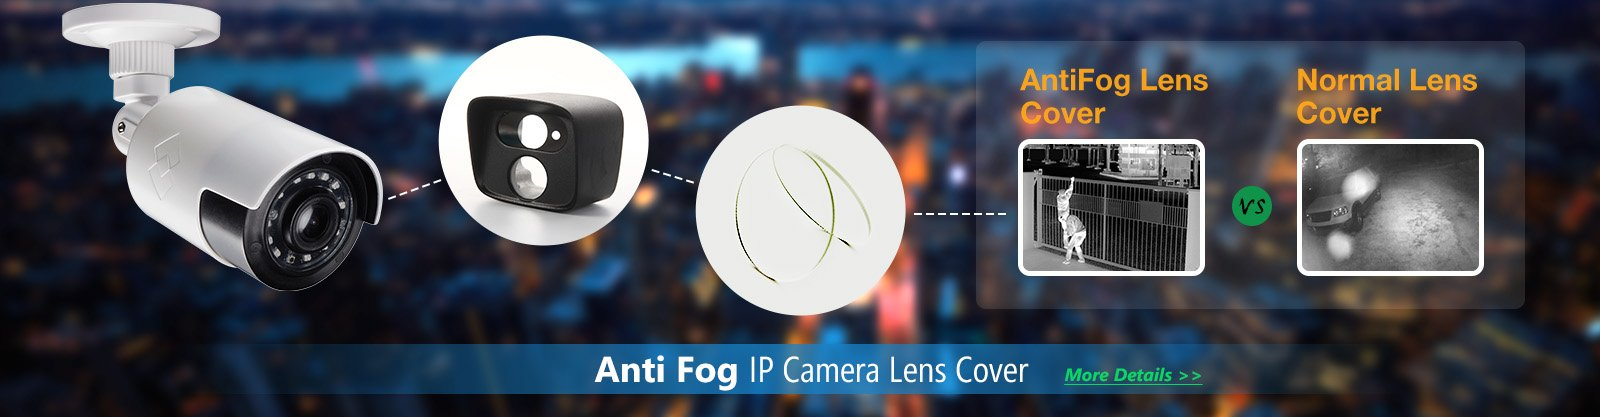 IP-Camera-AntiFogLens